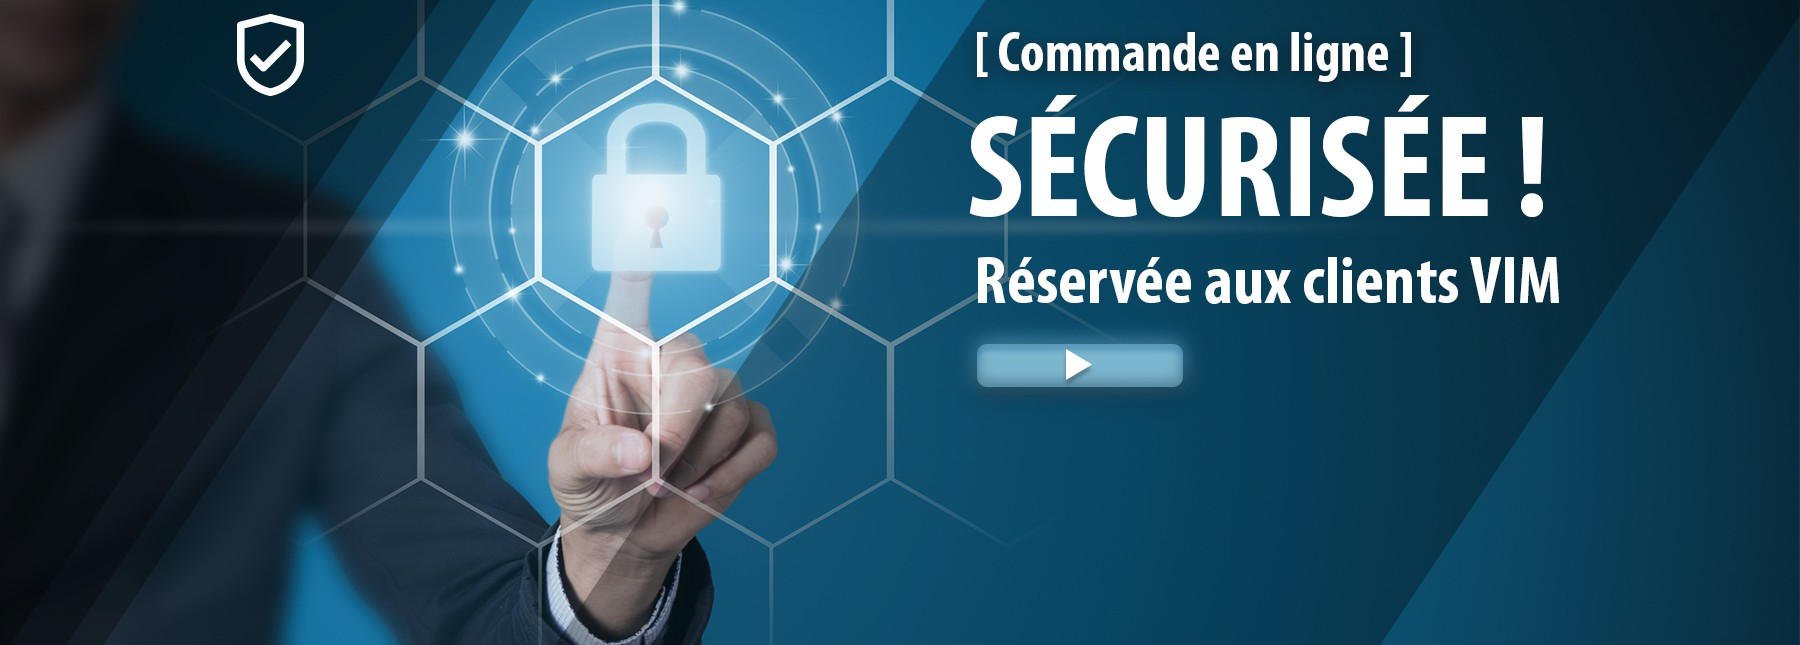 E-commerce- SECURISE